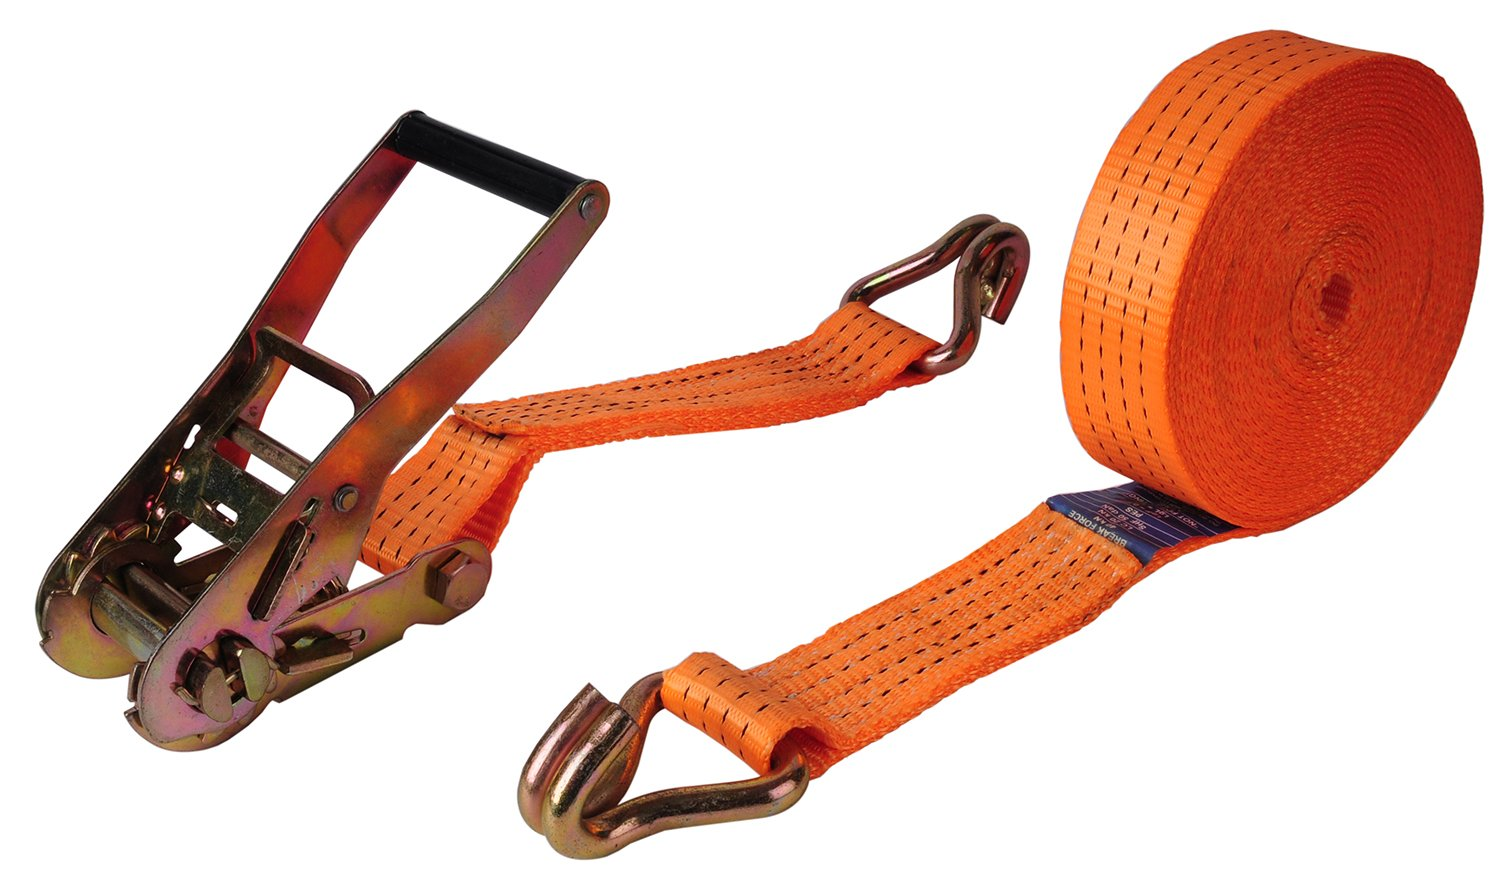 """Premium Ratchet Tie Down, Maxxprime 33' x 2"""" 10, 000 lbs Rated Capacity Tie-Down Ratcheting Cargo Truck Straps with Double J-Hooks - German Quality by MAXXPRIME (Image #5)"""